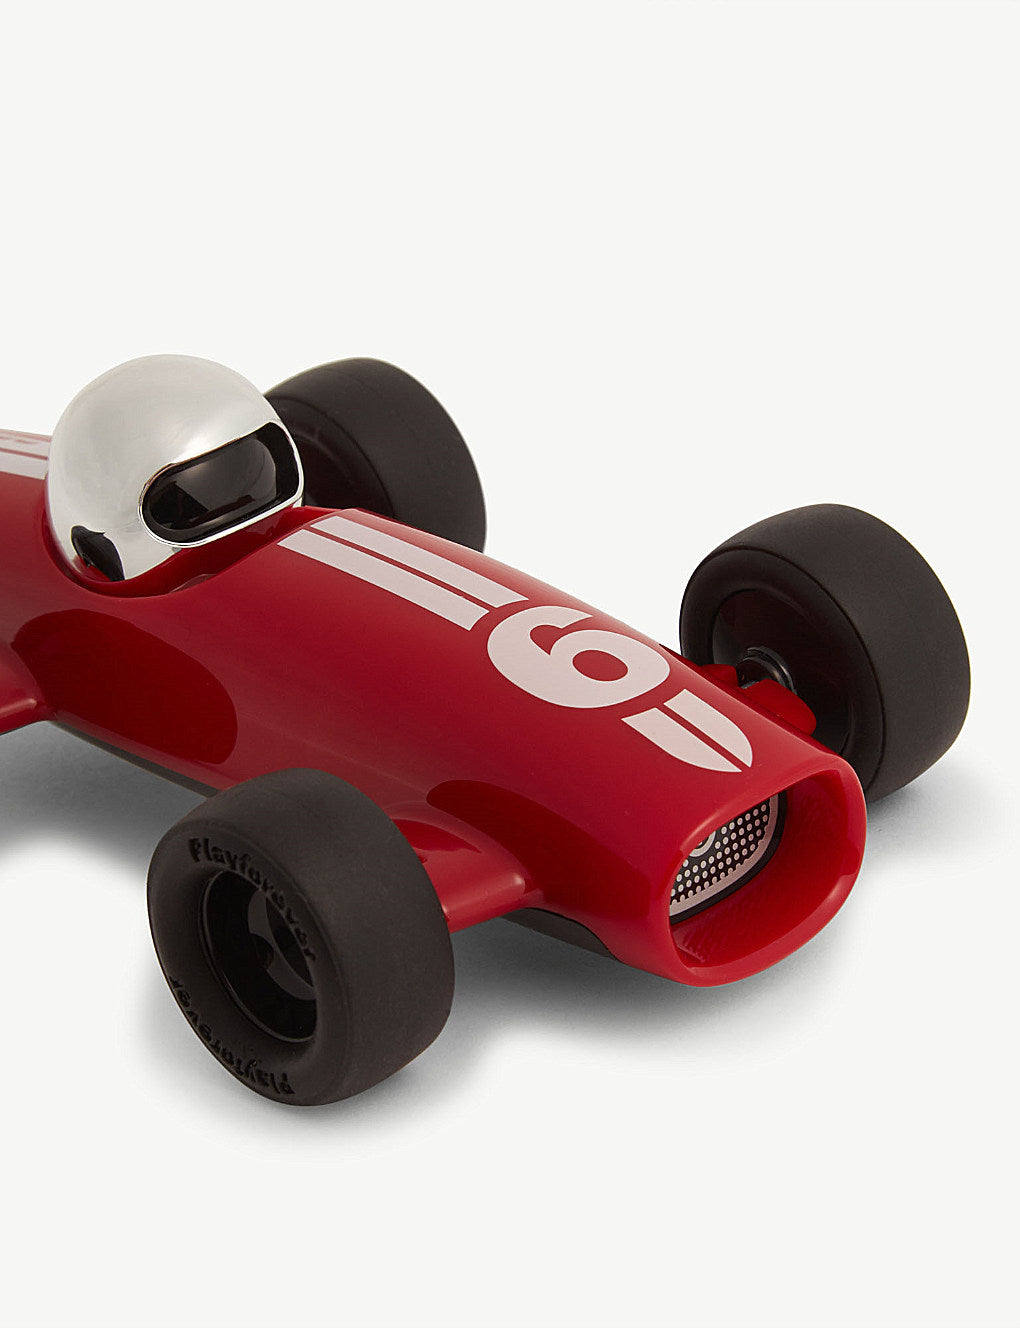 Other Radio Control - Malibu Ross race car toy for sale in Outside